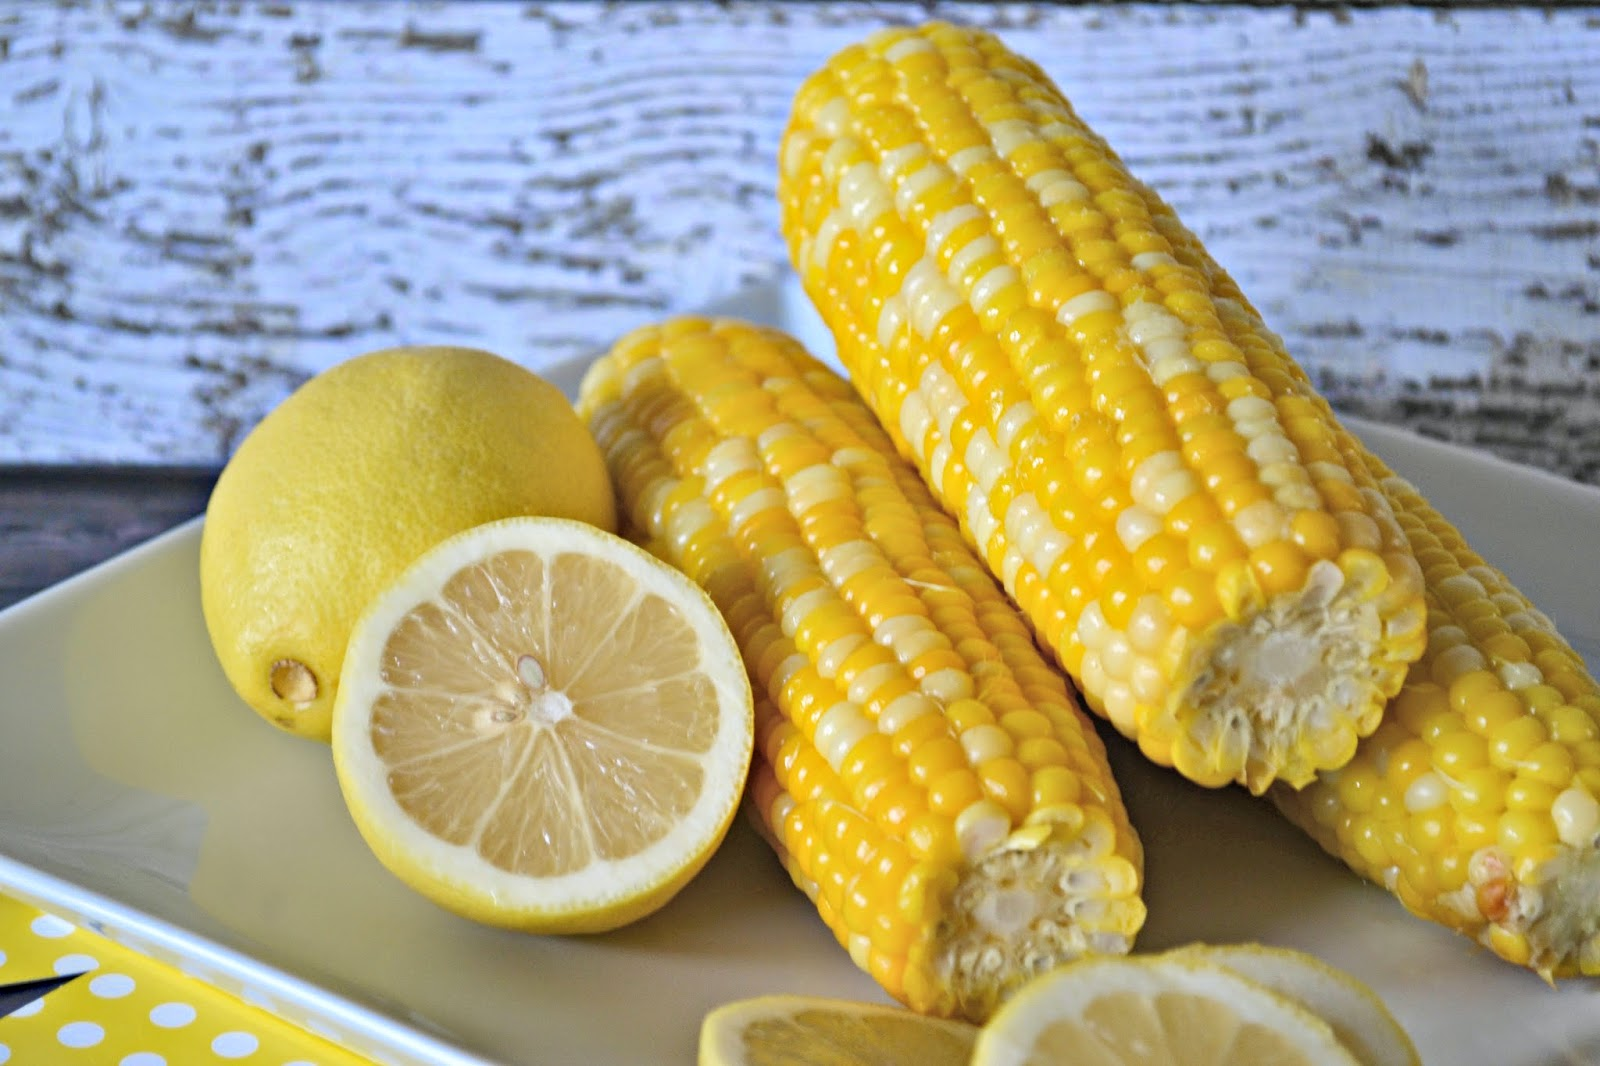 Flavoring with Lemon Instead of Salt: Lemon-Garlic Glazed Corn on the Cobb #Recipe #tablethesalt.  Corn on the cobb recipes.   How to flavor with lemon instead of salt. Flavoring with lemon instead of salt.  Sunkist S'alternative. Lemon as an alternative to salt.